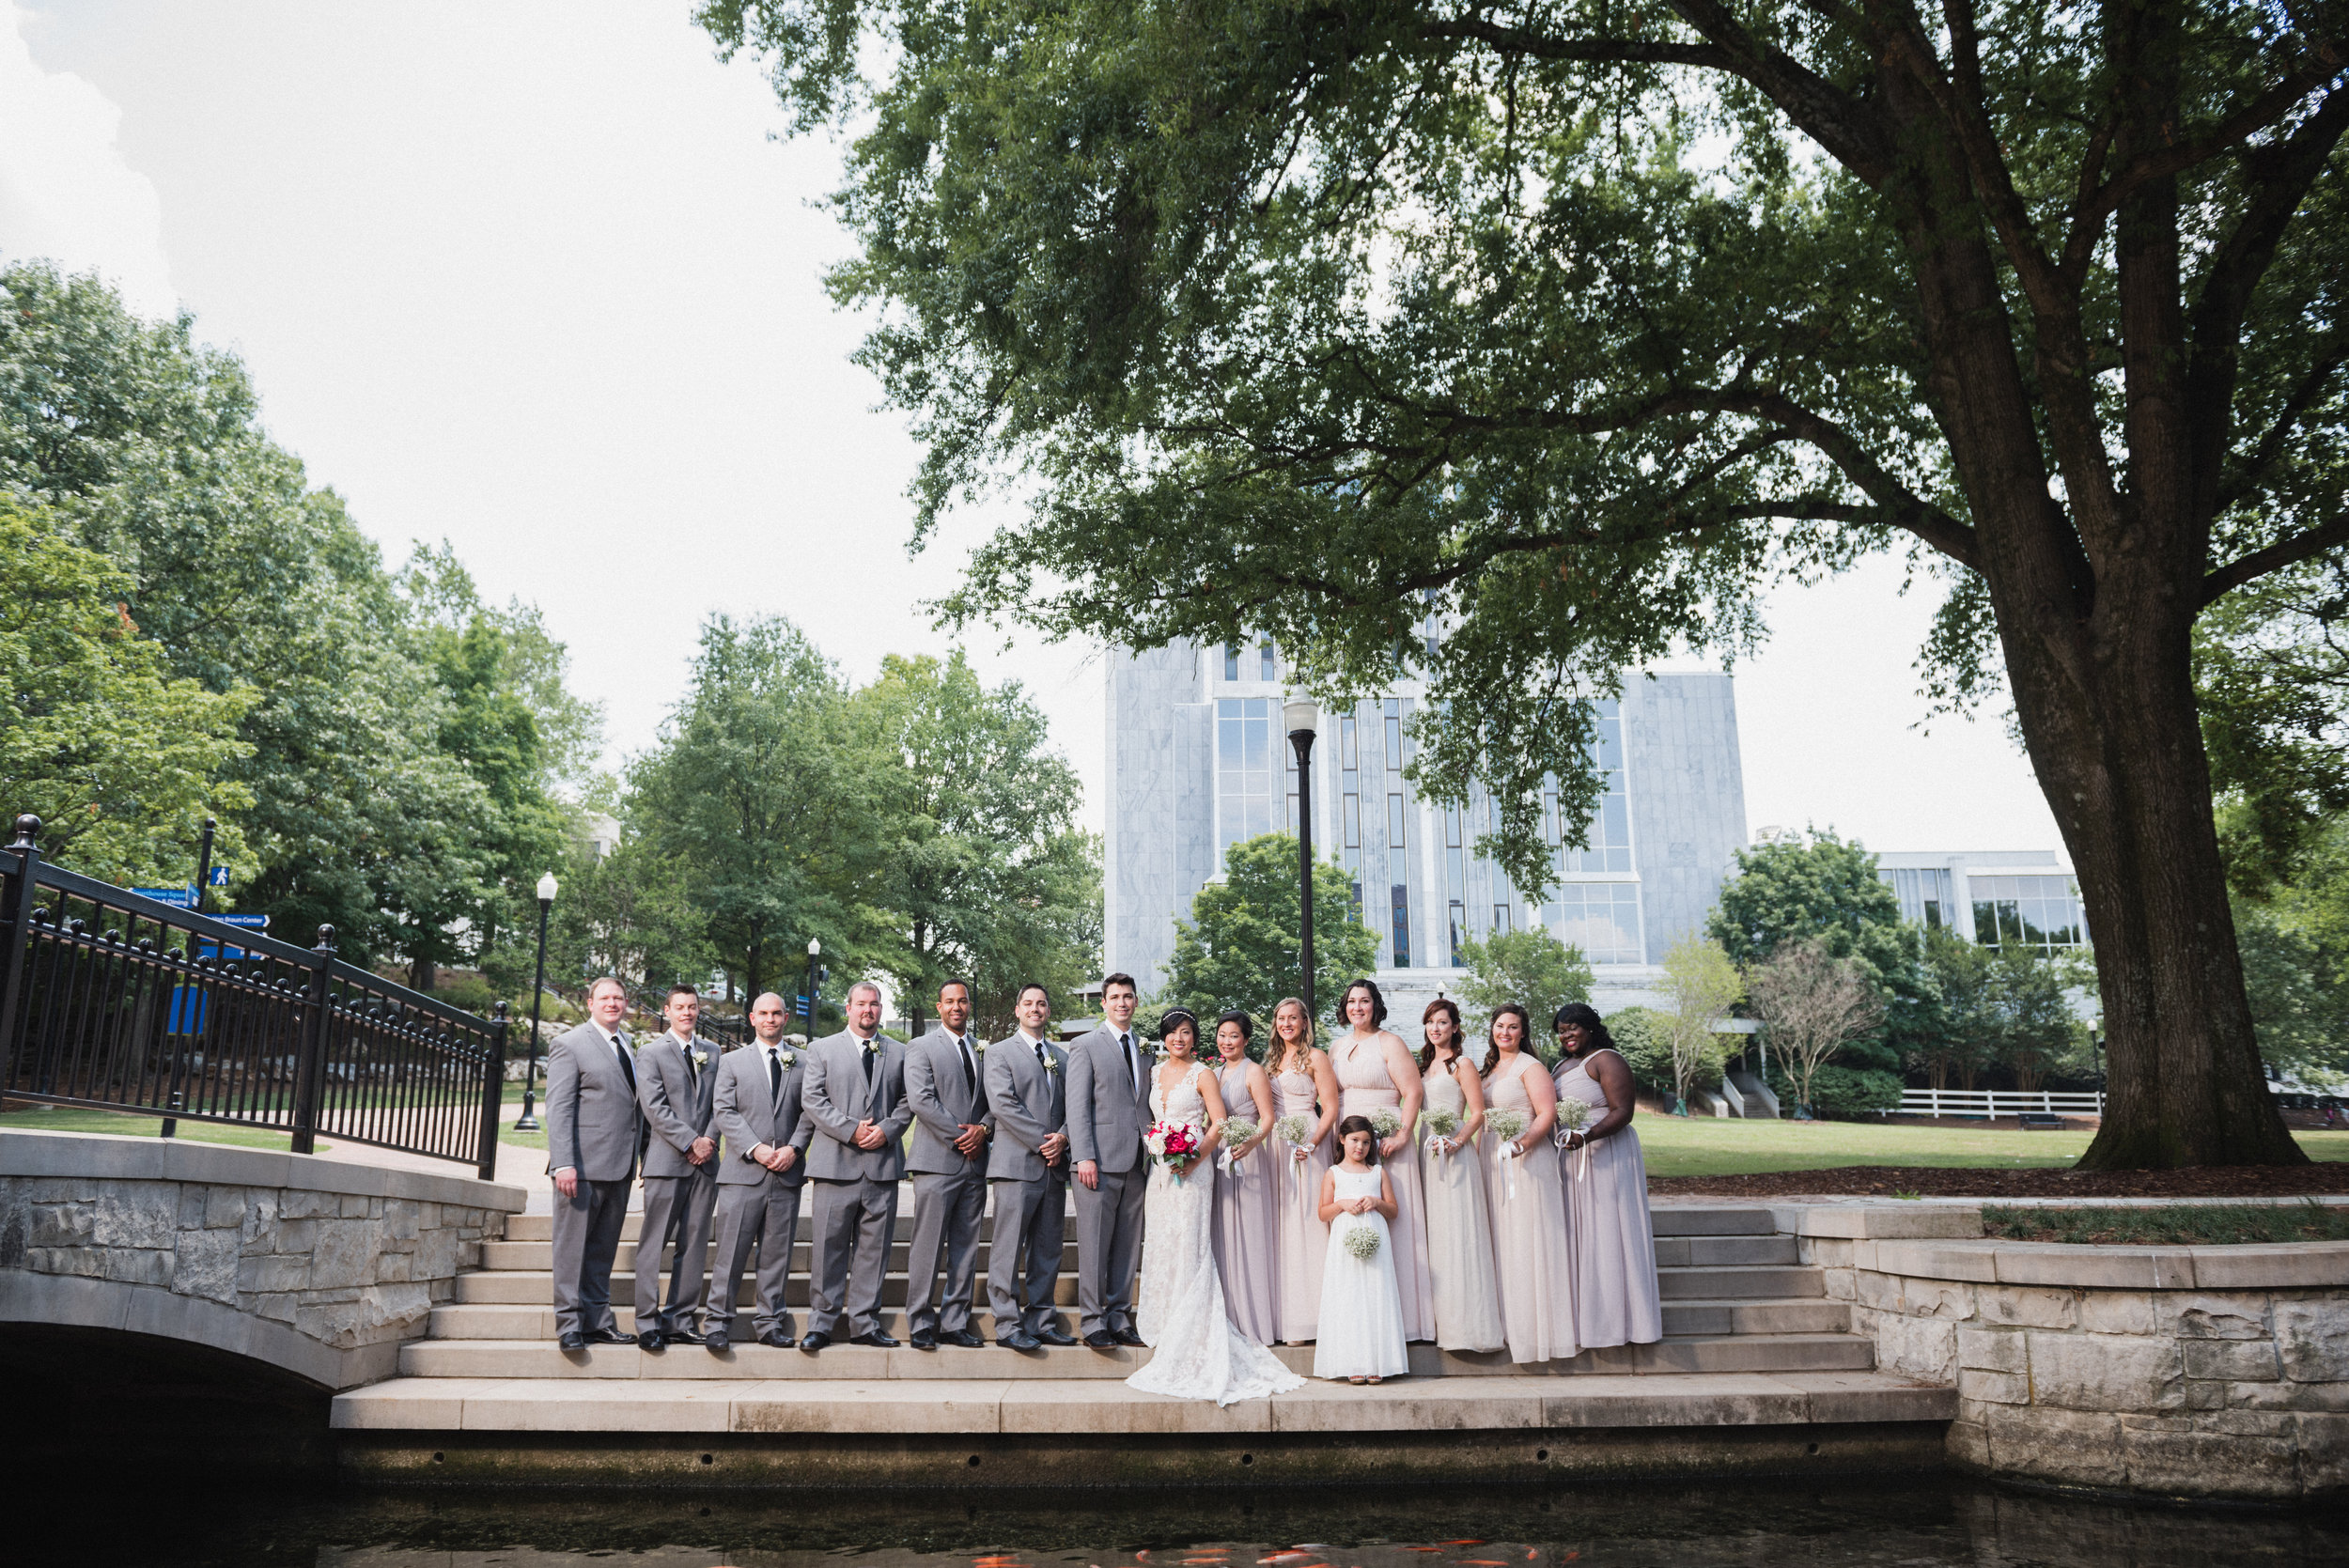 NashvilleWeddingCollection-482.jpg